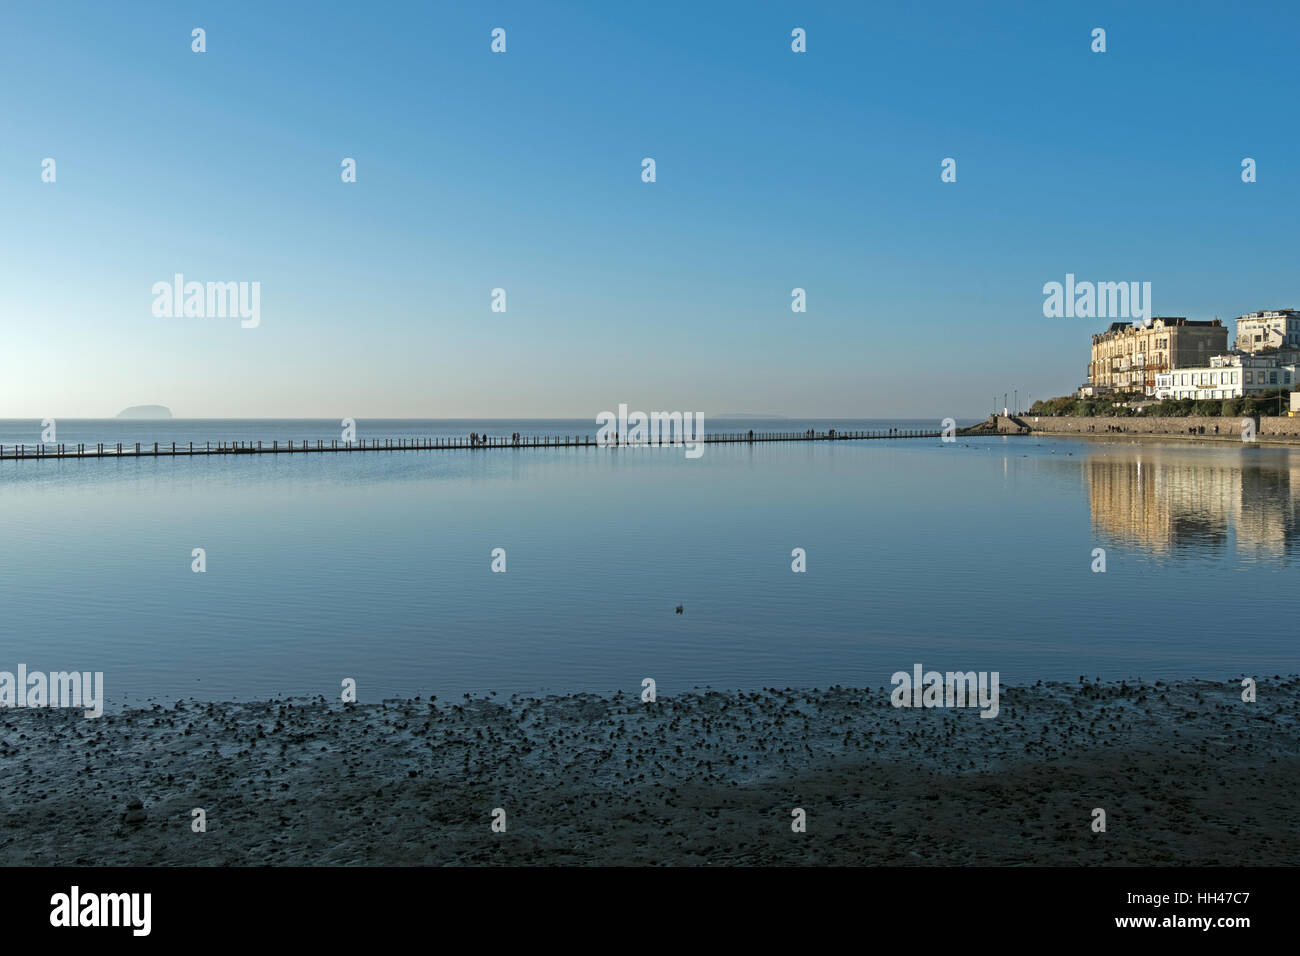 The Marine Lake in Weston-super-Mare, England on a sunny winter day - Stock Image